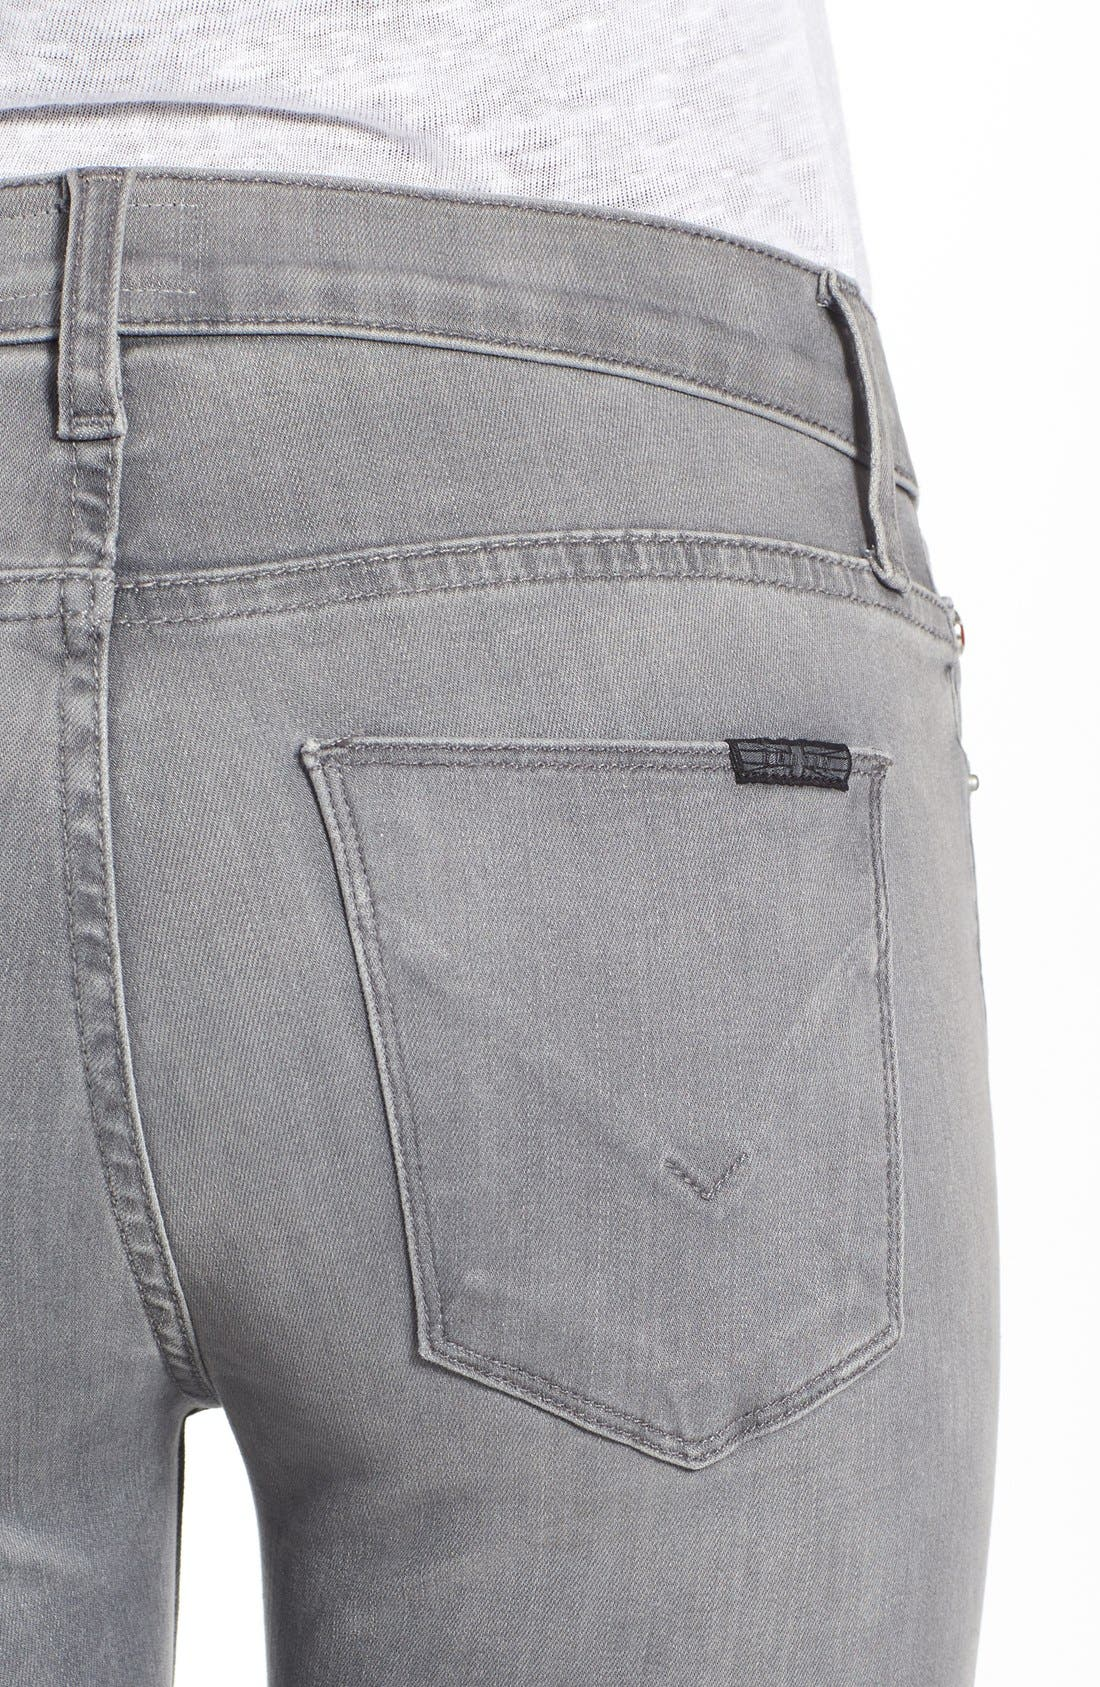 'Nico' Super Skinny Jeans,                             Alternate thumbnail 7, color,